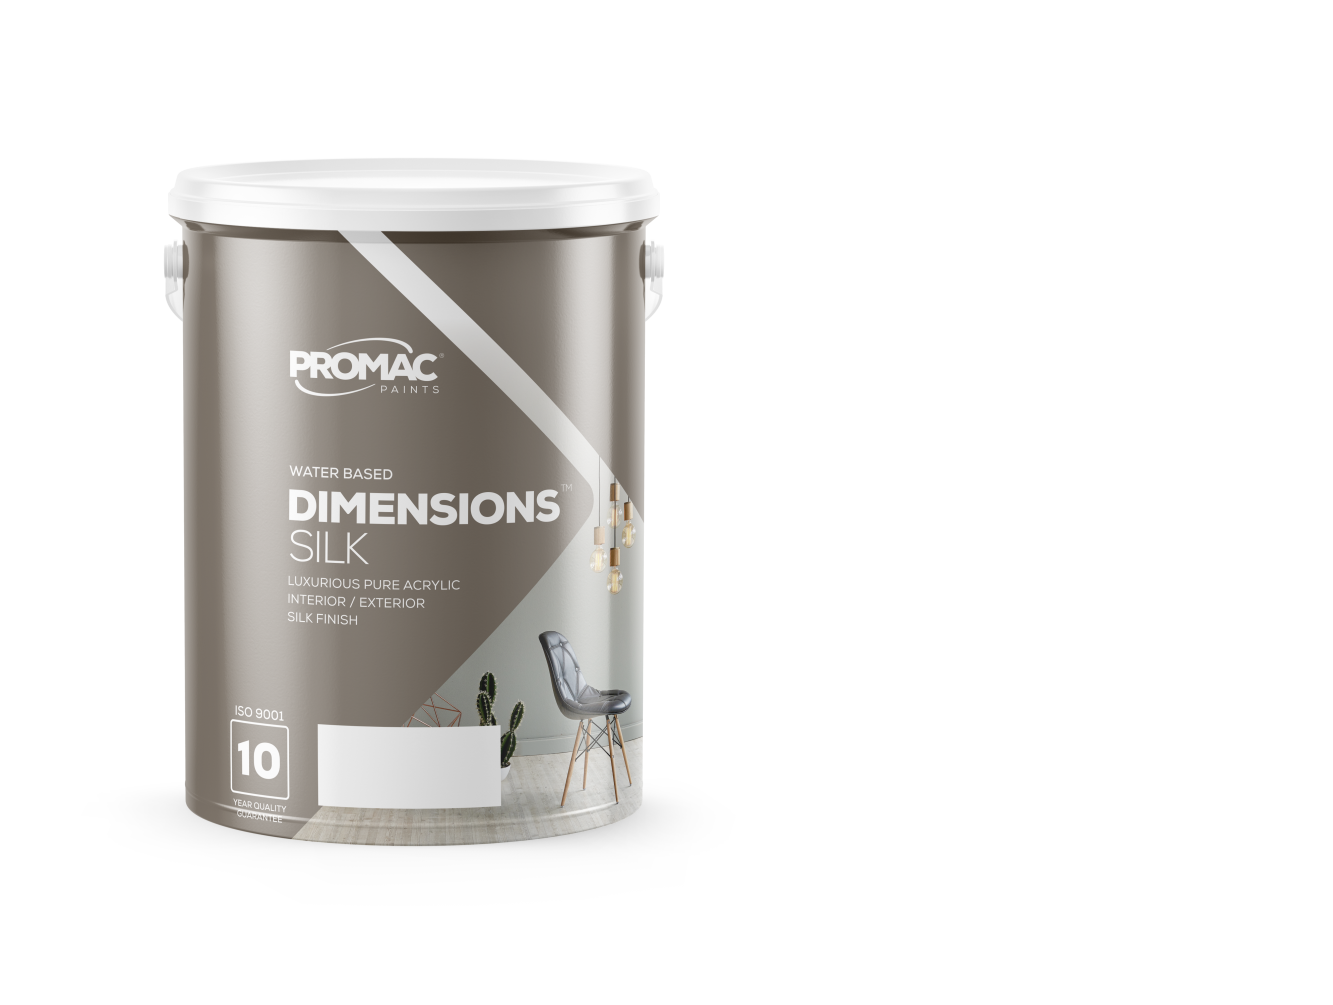 DIMENSIONSSILK - WATER BASEDPromac Dimensions™ Silk is a water-based, pure acrylic, with a high-quality sheen finish and excellent washability making it suitable for high traffic interior and exterior areas. It has excellent adhesive properties and is mould, stain and water resistant.